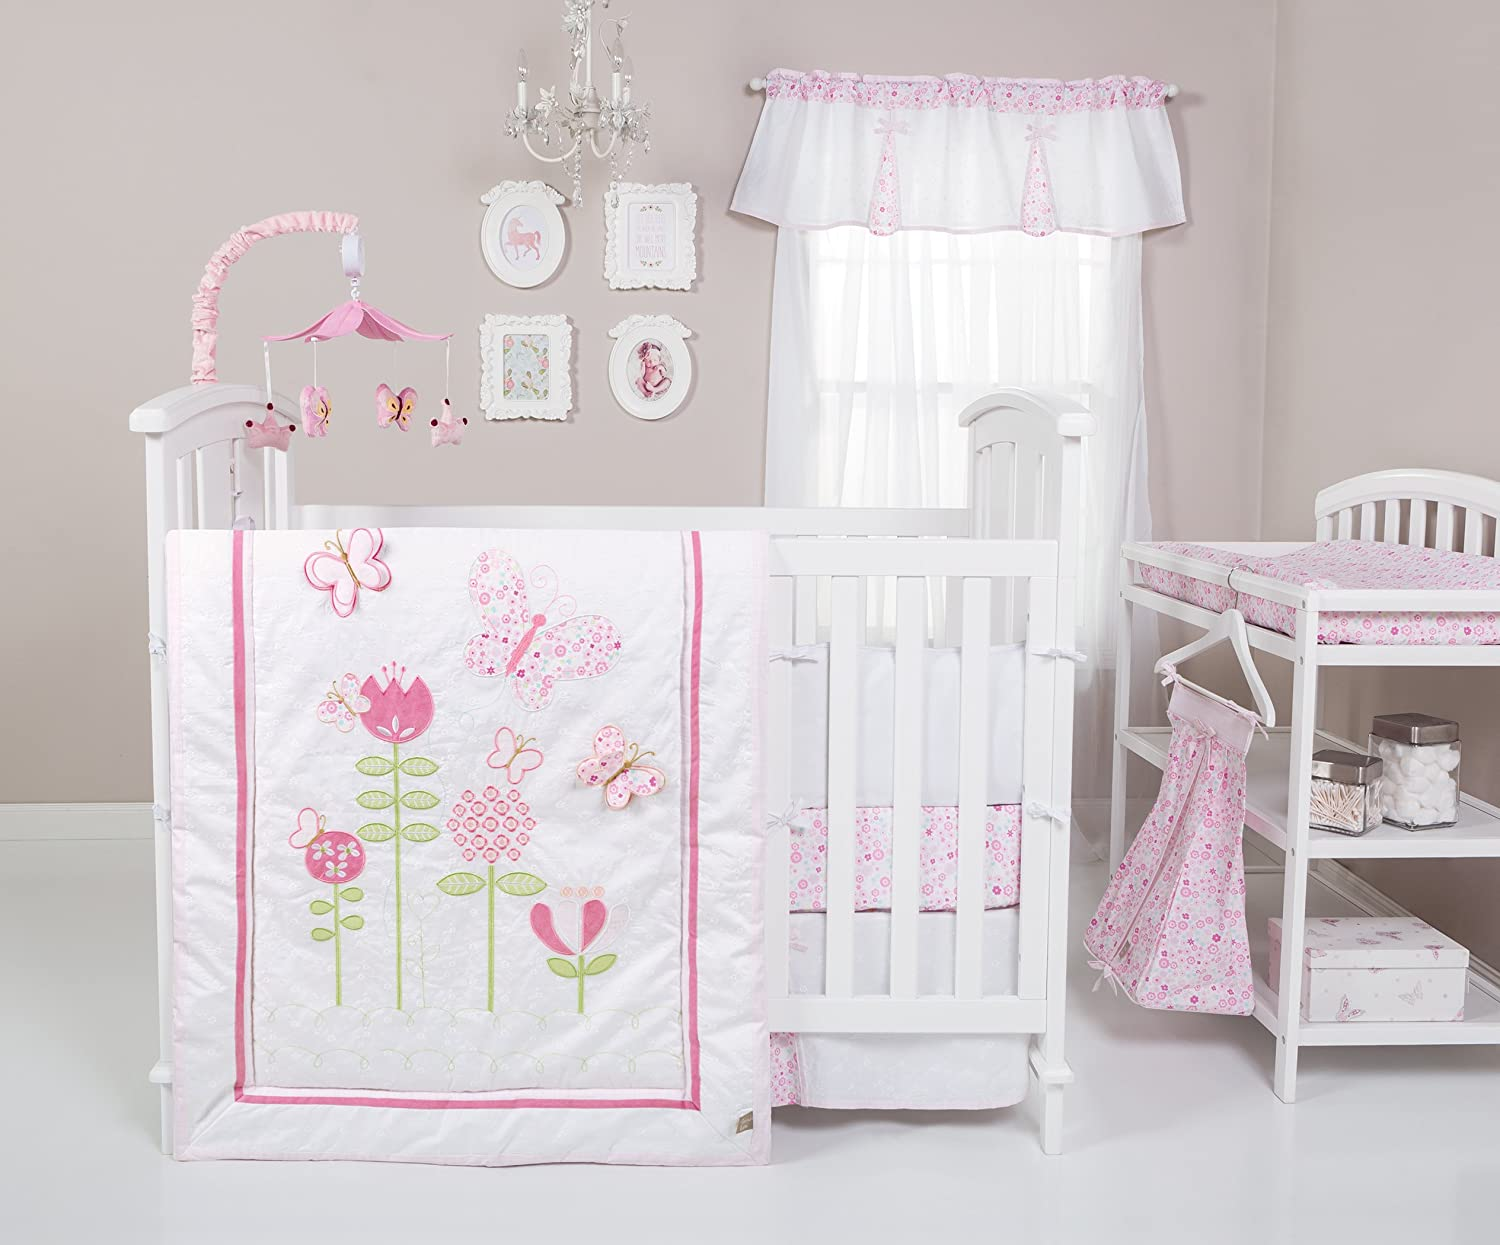 Trend Lab Floral Fun 6 Piece Crib Bedding Set, White/Pink 102364